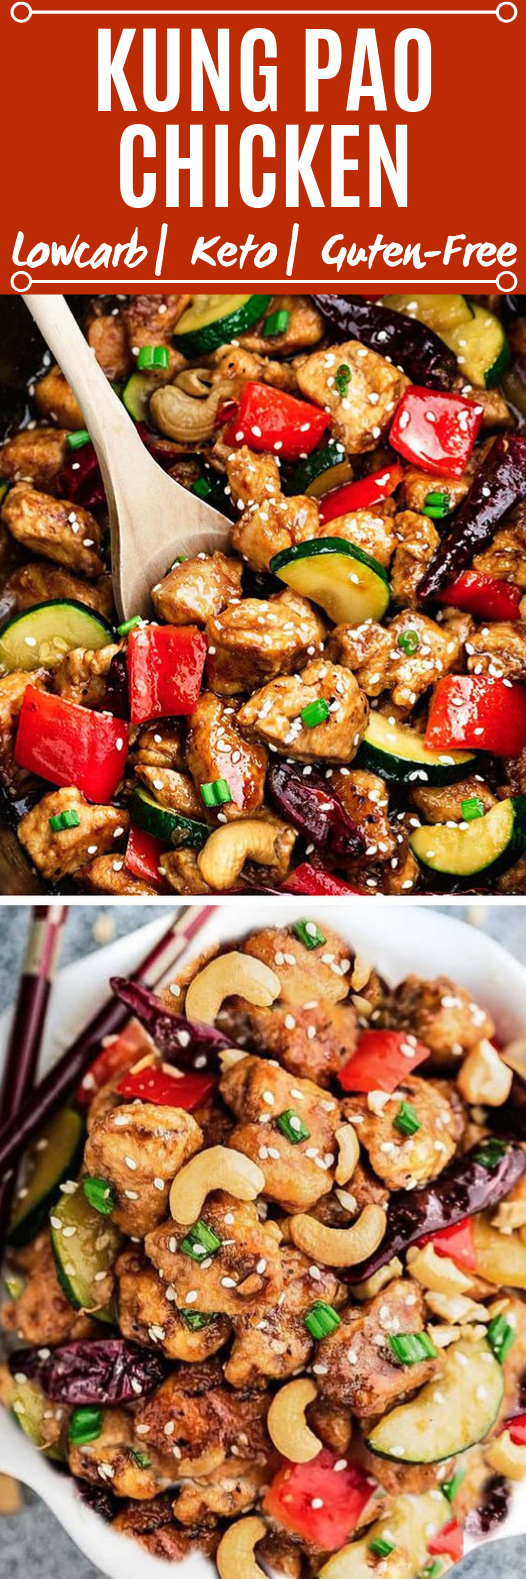 Low Carb Kung Pao Chicken #healthy #lowcarb